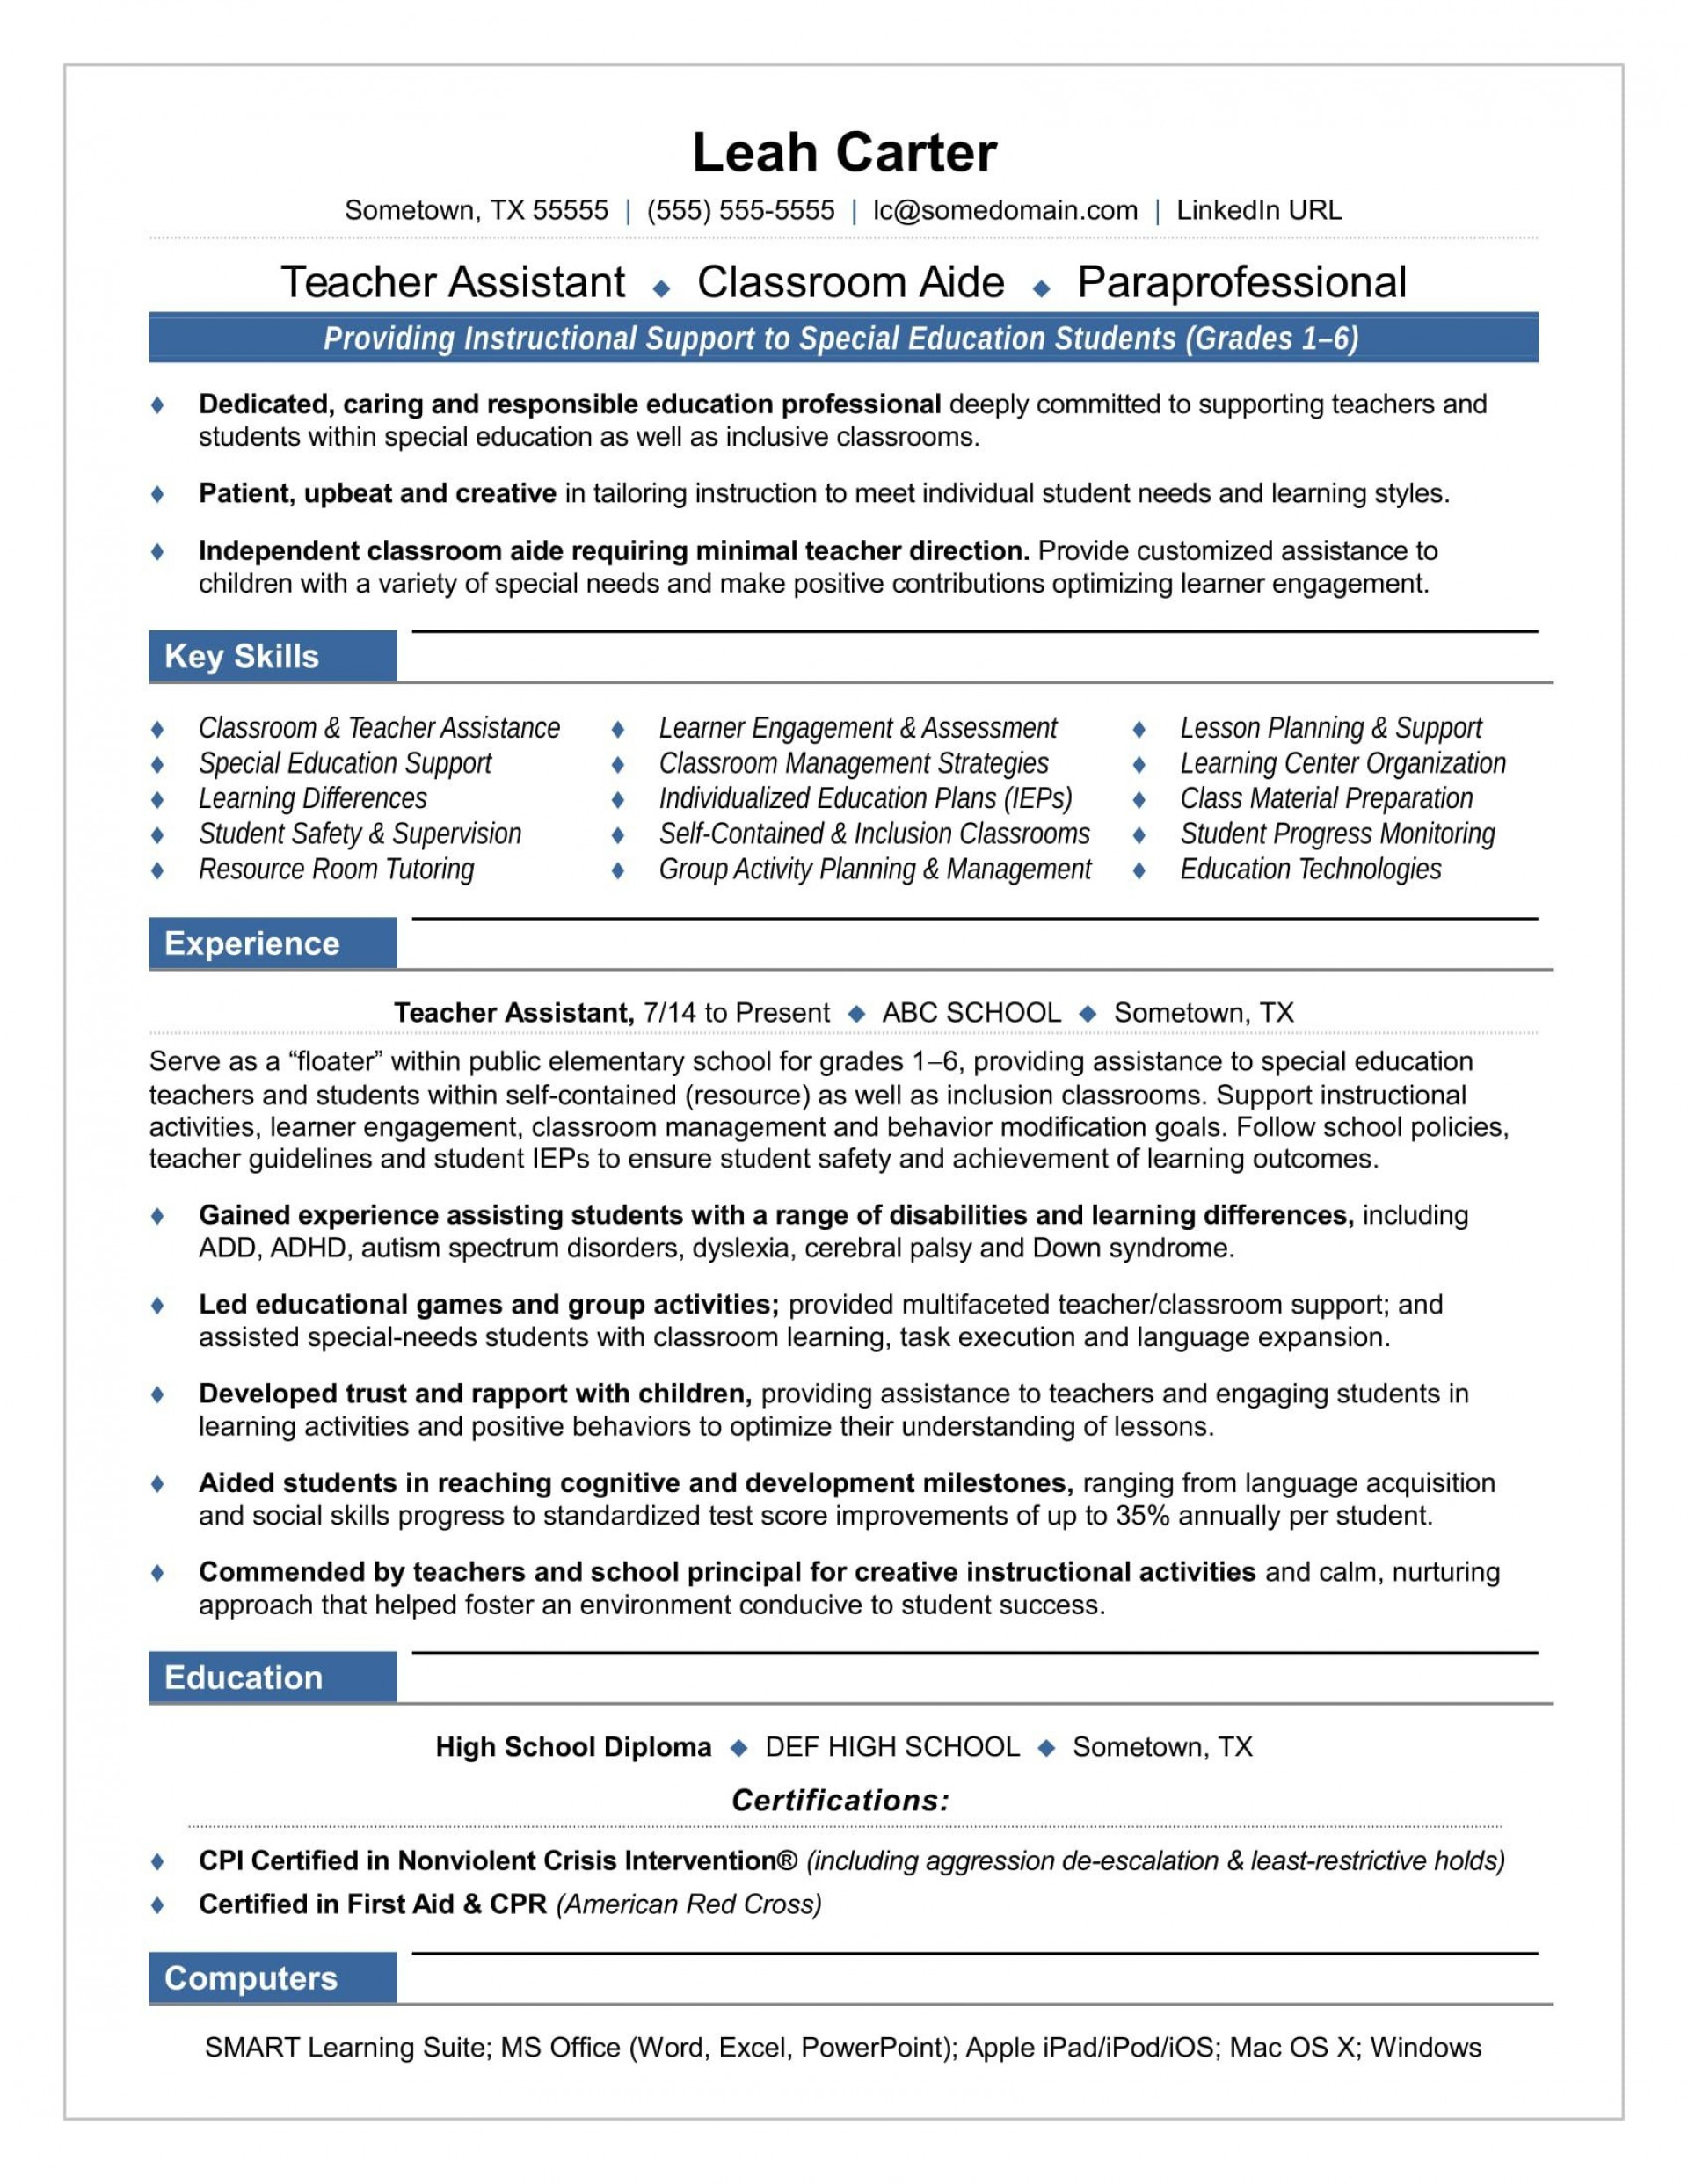 007 Simple Cv Template For Teaching Highest Clarity  Sample Teacher Assistant Modern Word Free Download Job1920